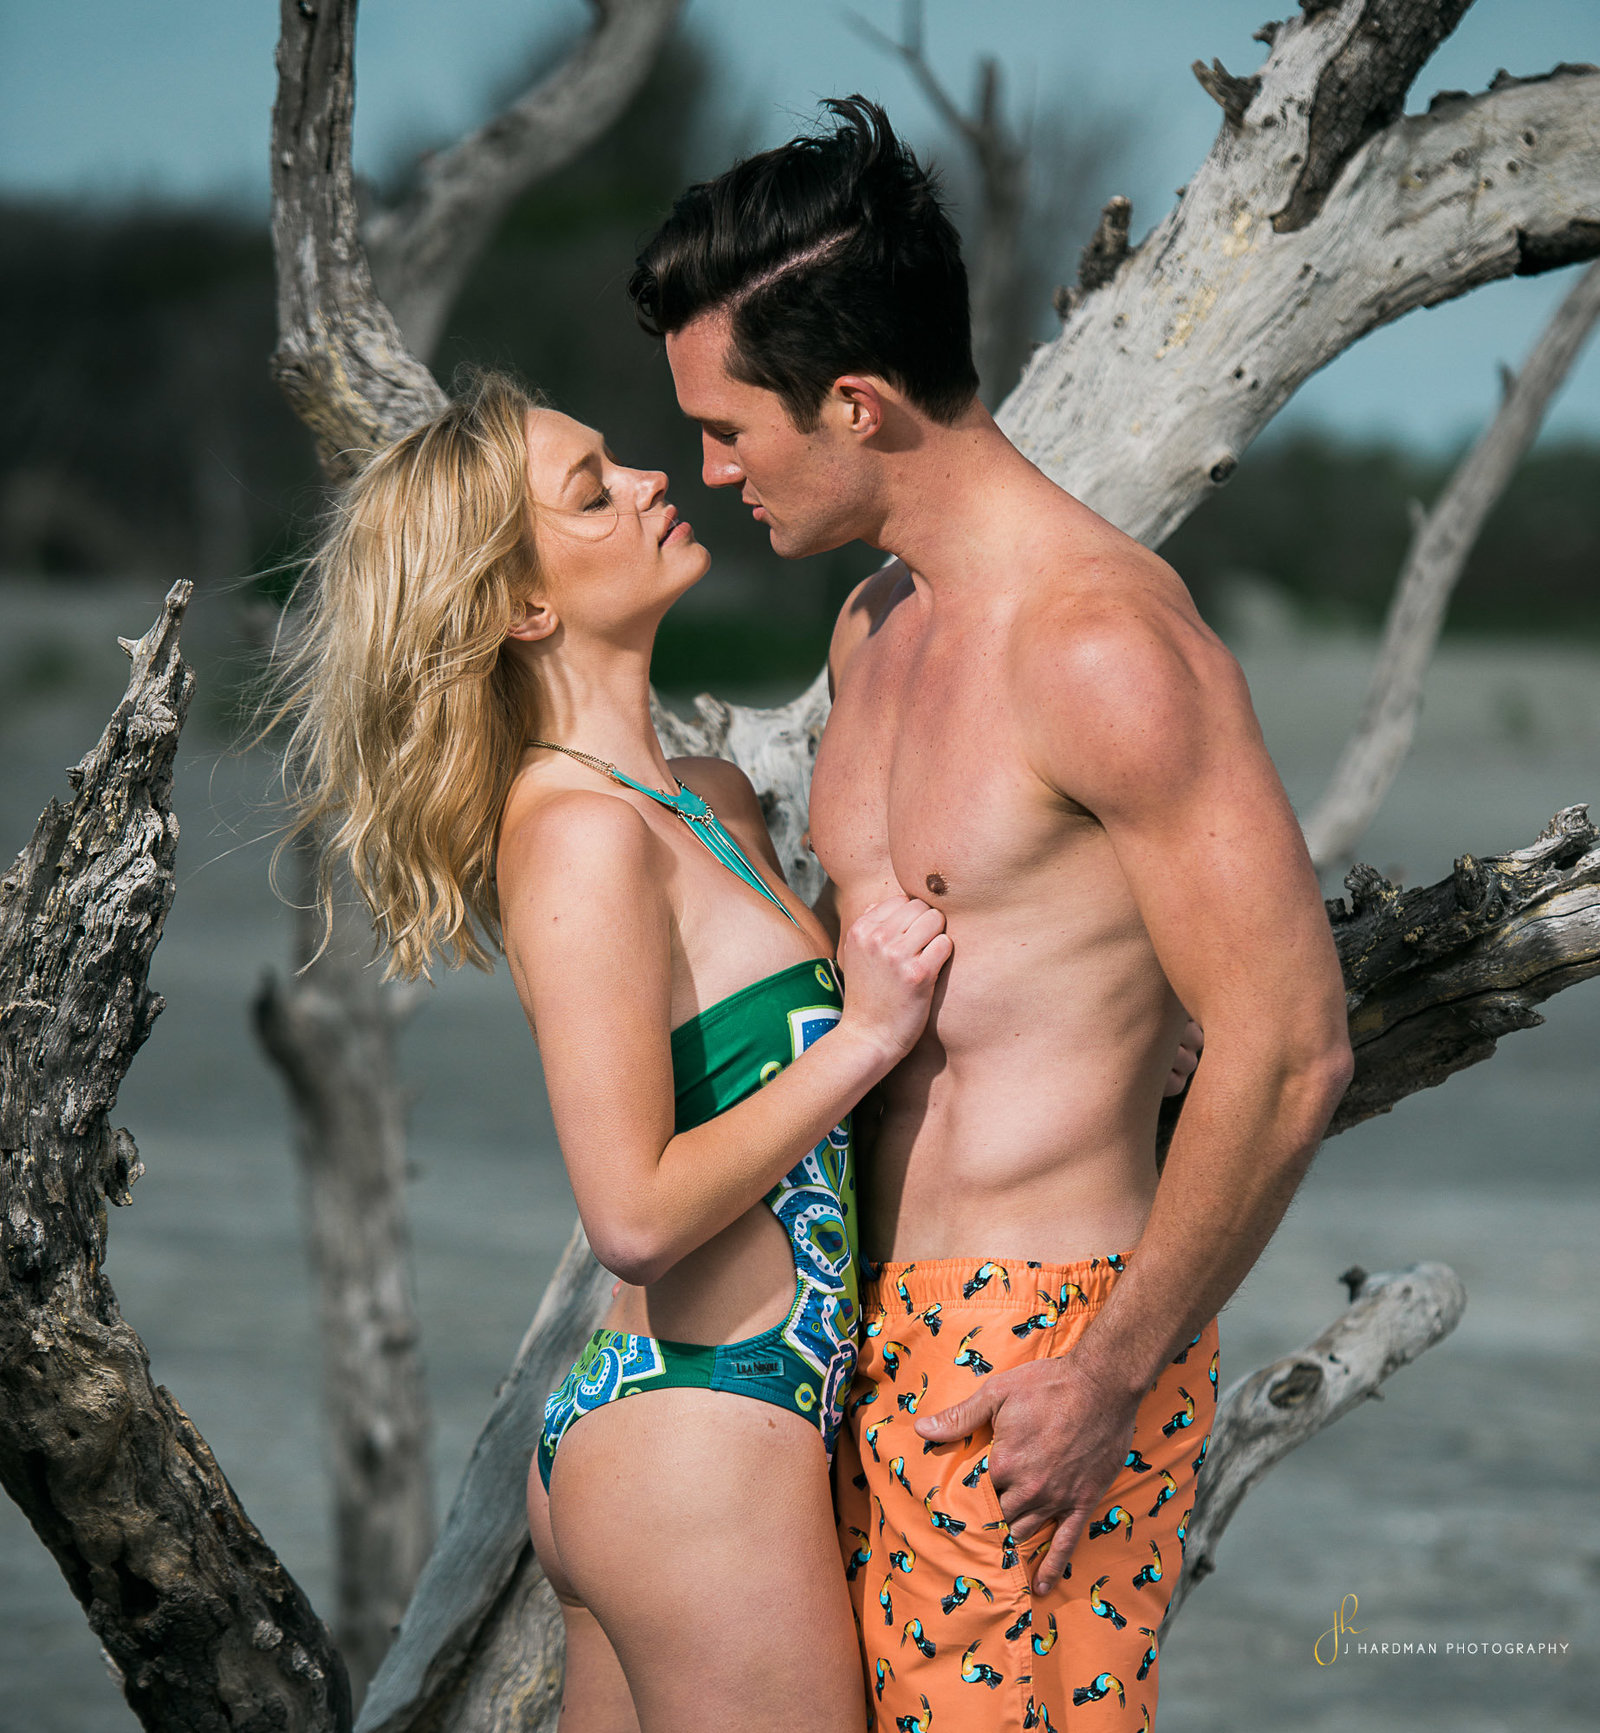 Couple Beach Photography Session with Hardman Portraits